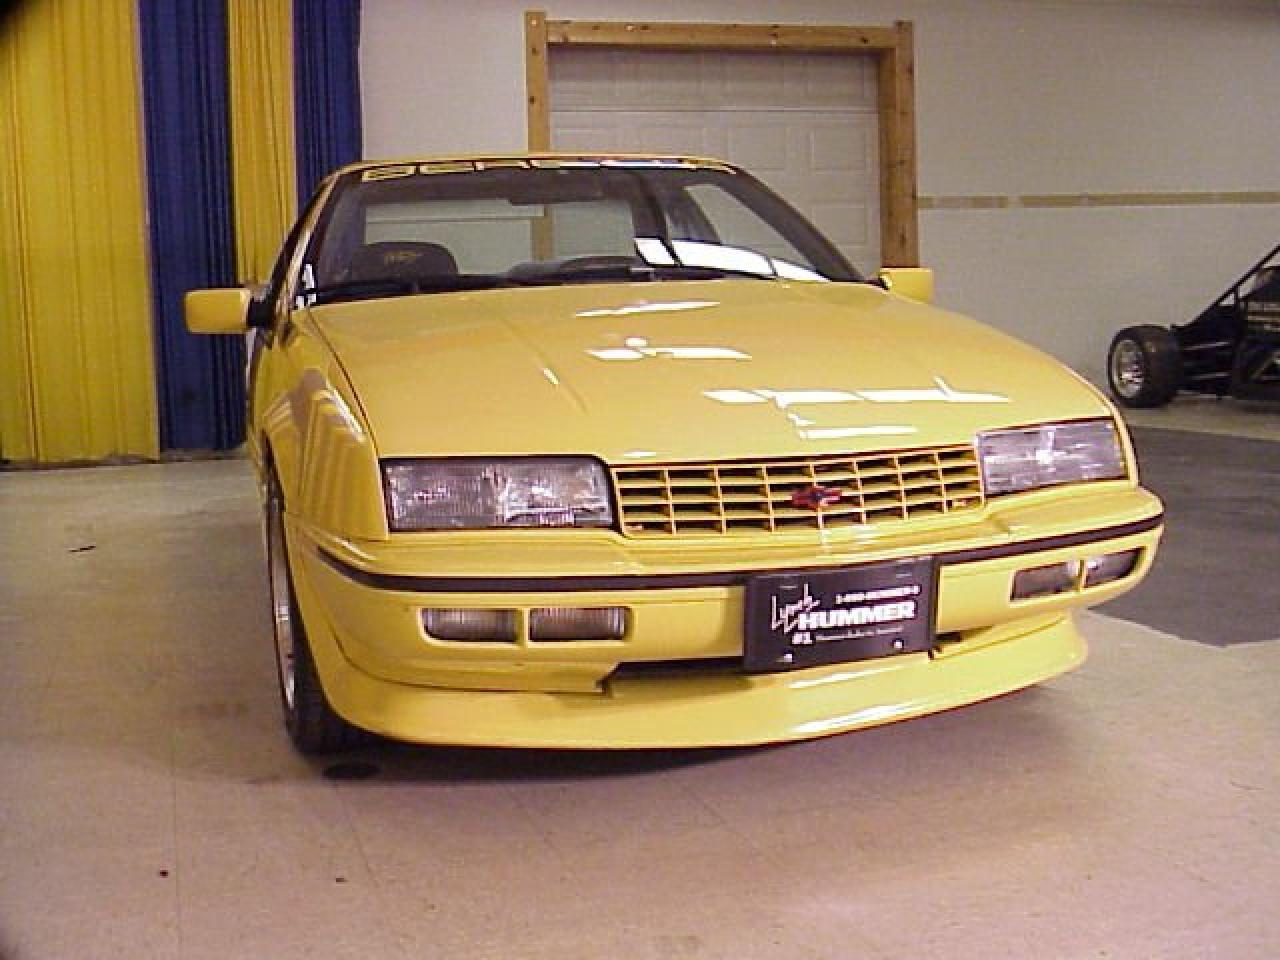 xcellent original 1990 indy pace car replica with all indy markings  #A48527